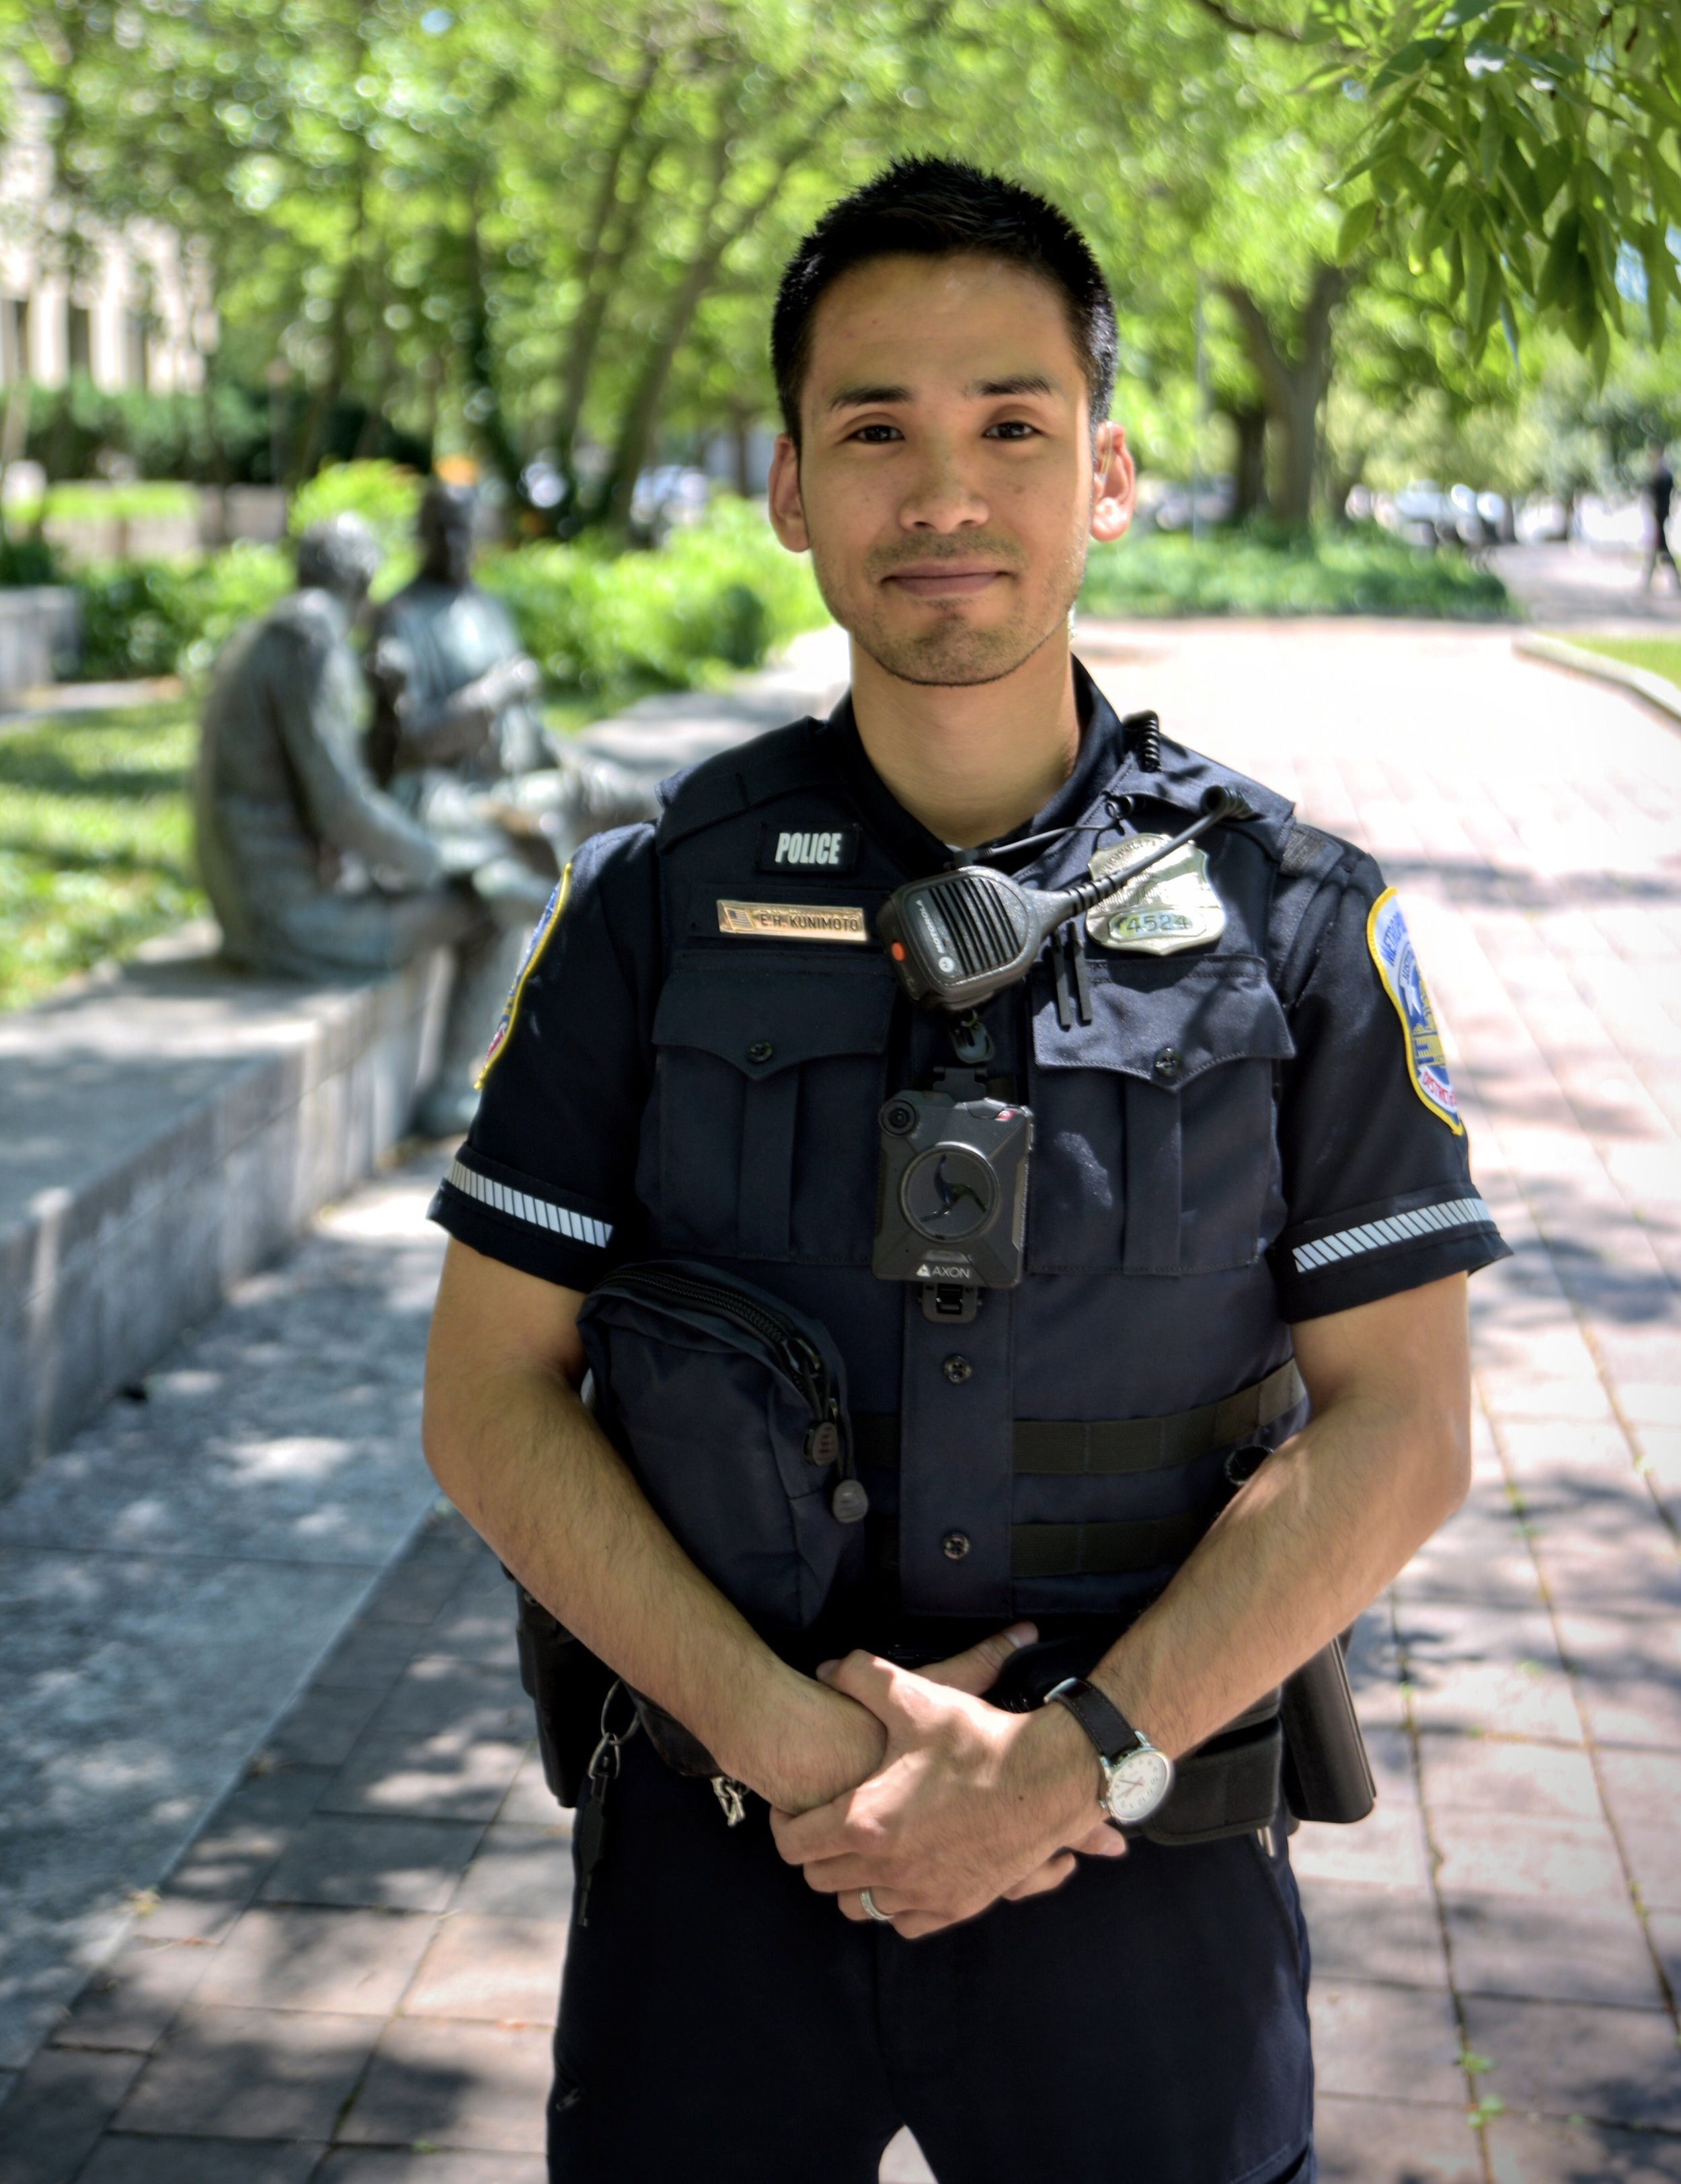 An MPD officer with a body-worn camera. (Credit: MPD Press)